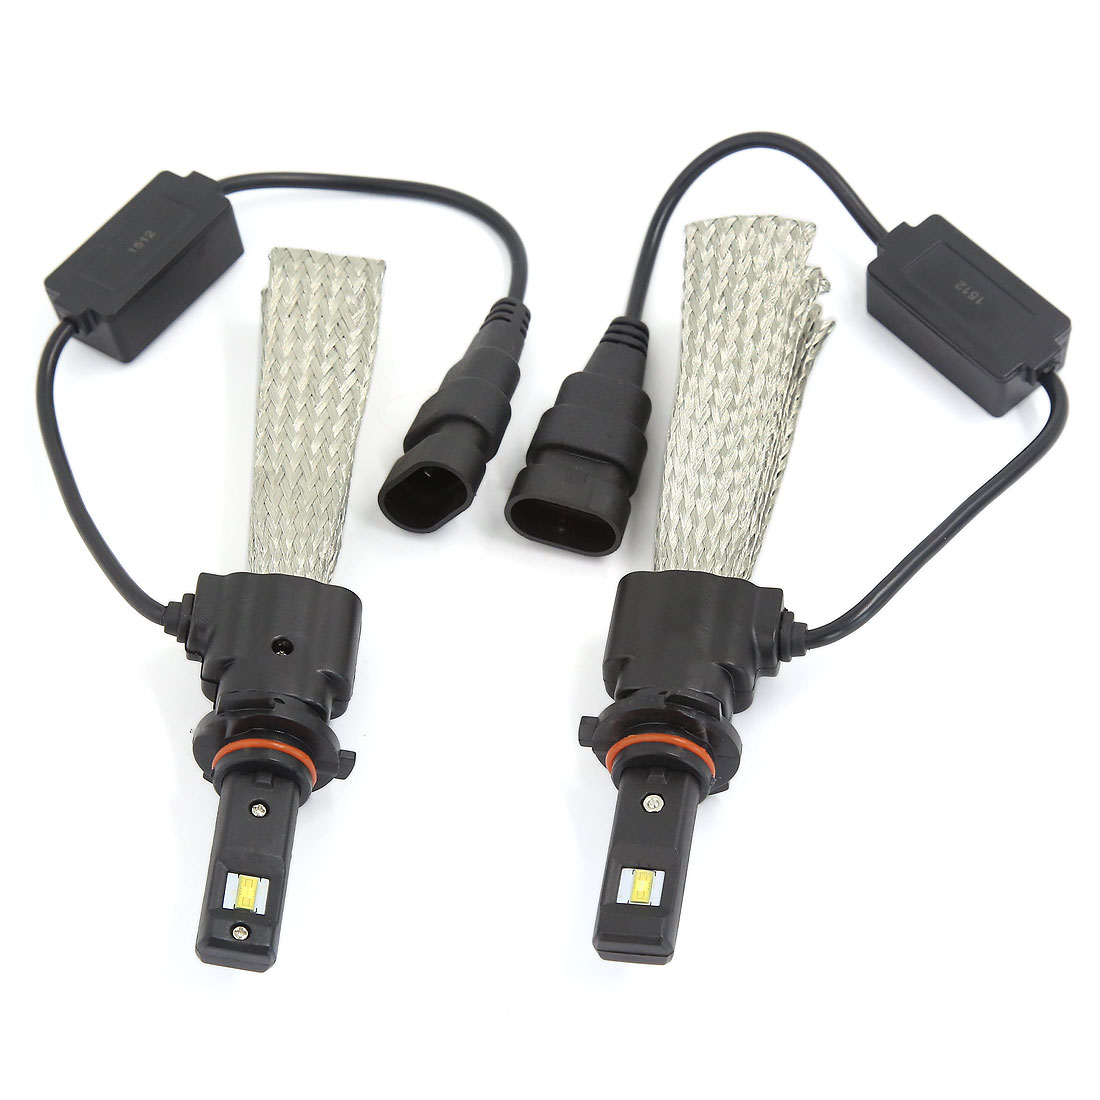 2PCS 9005 6000K White 30W 3200LM LED Headlight Conversion Kit w Copper Braid